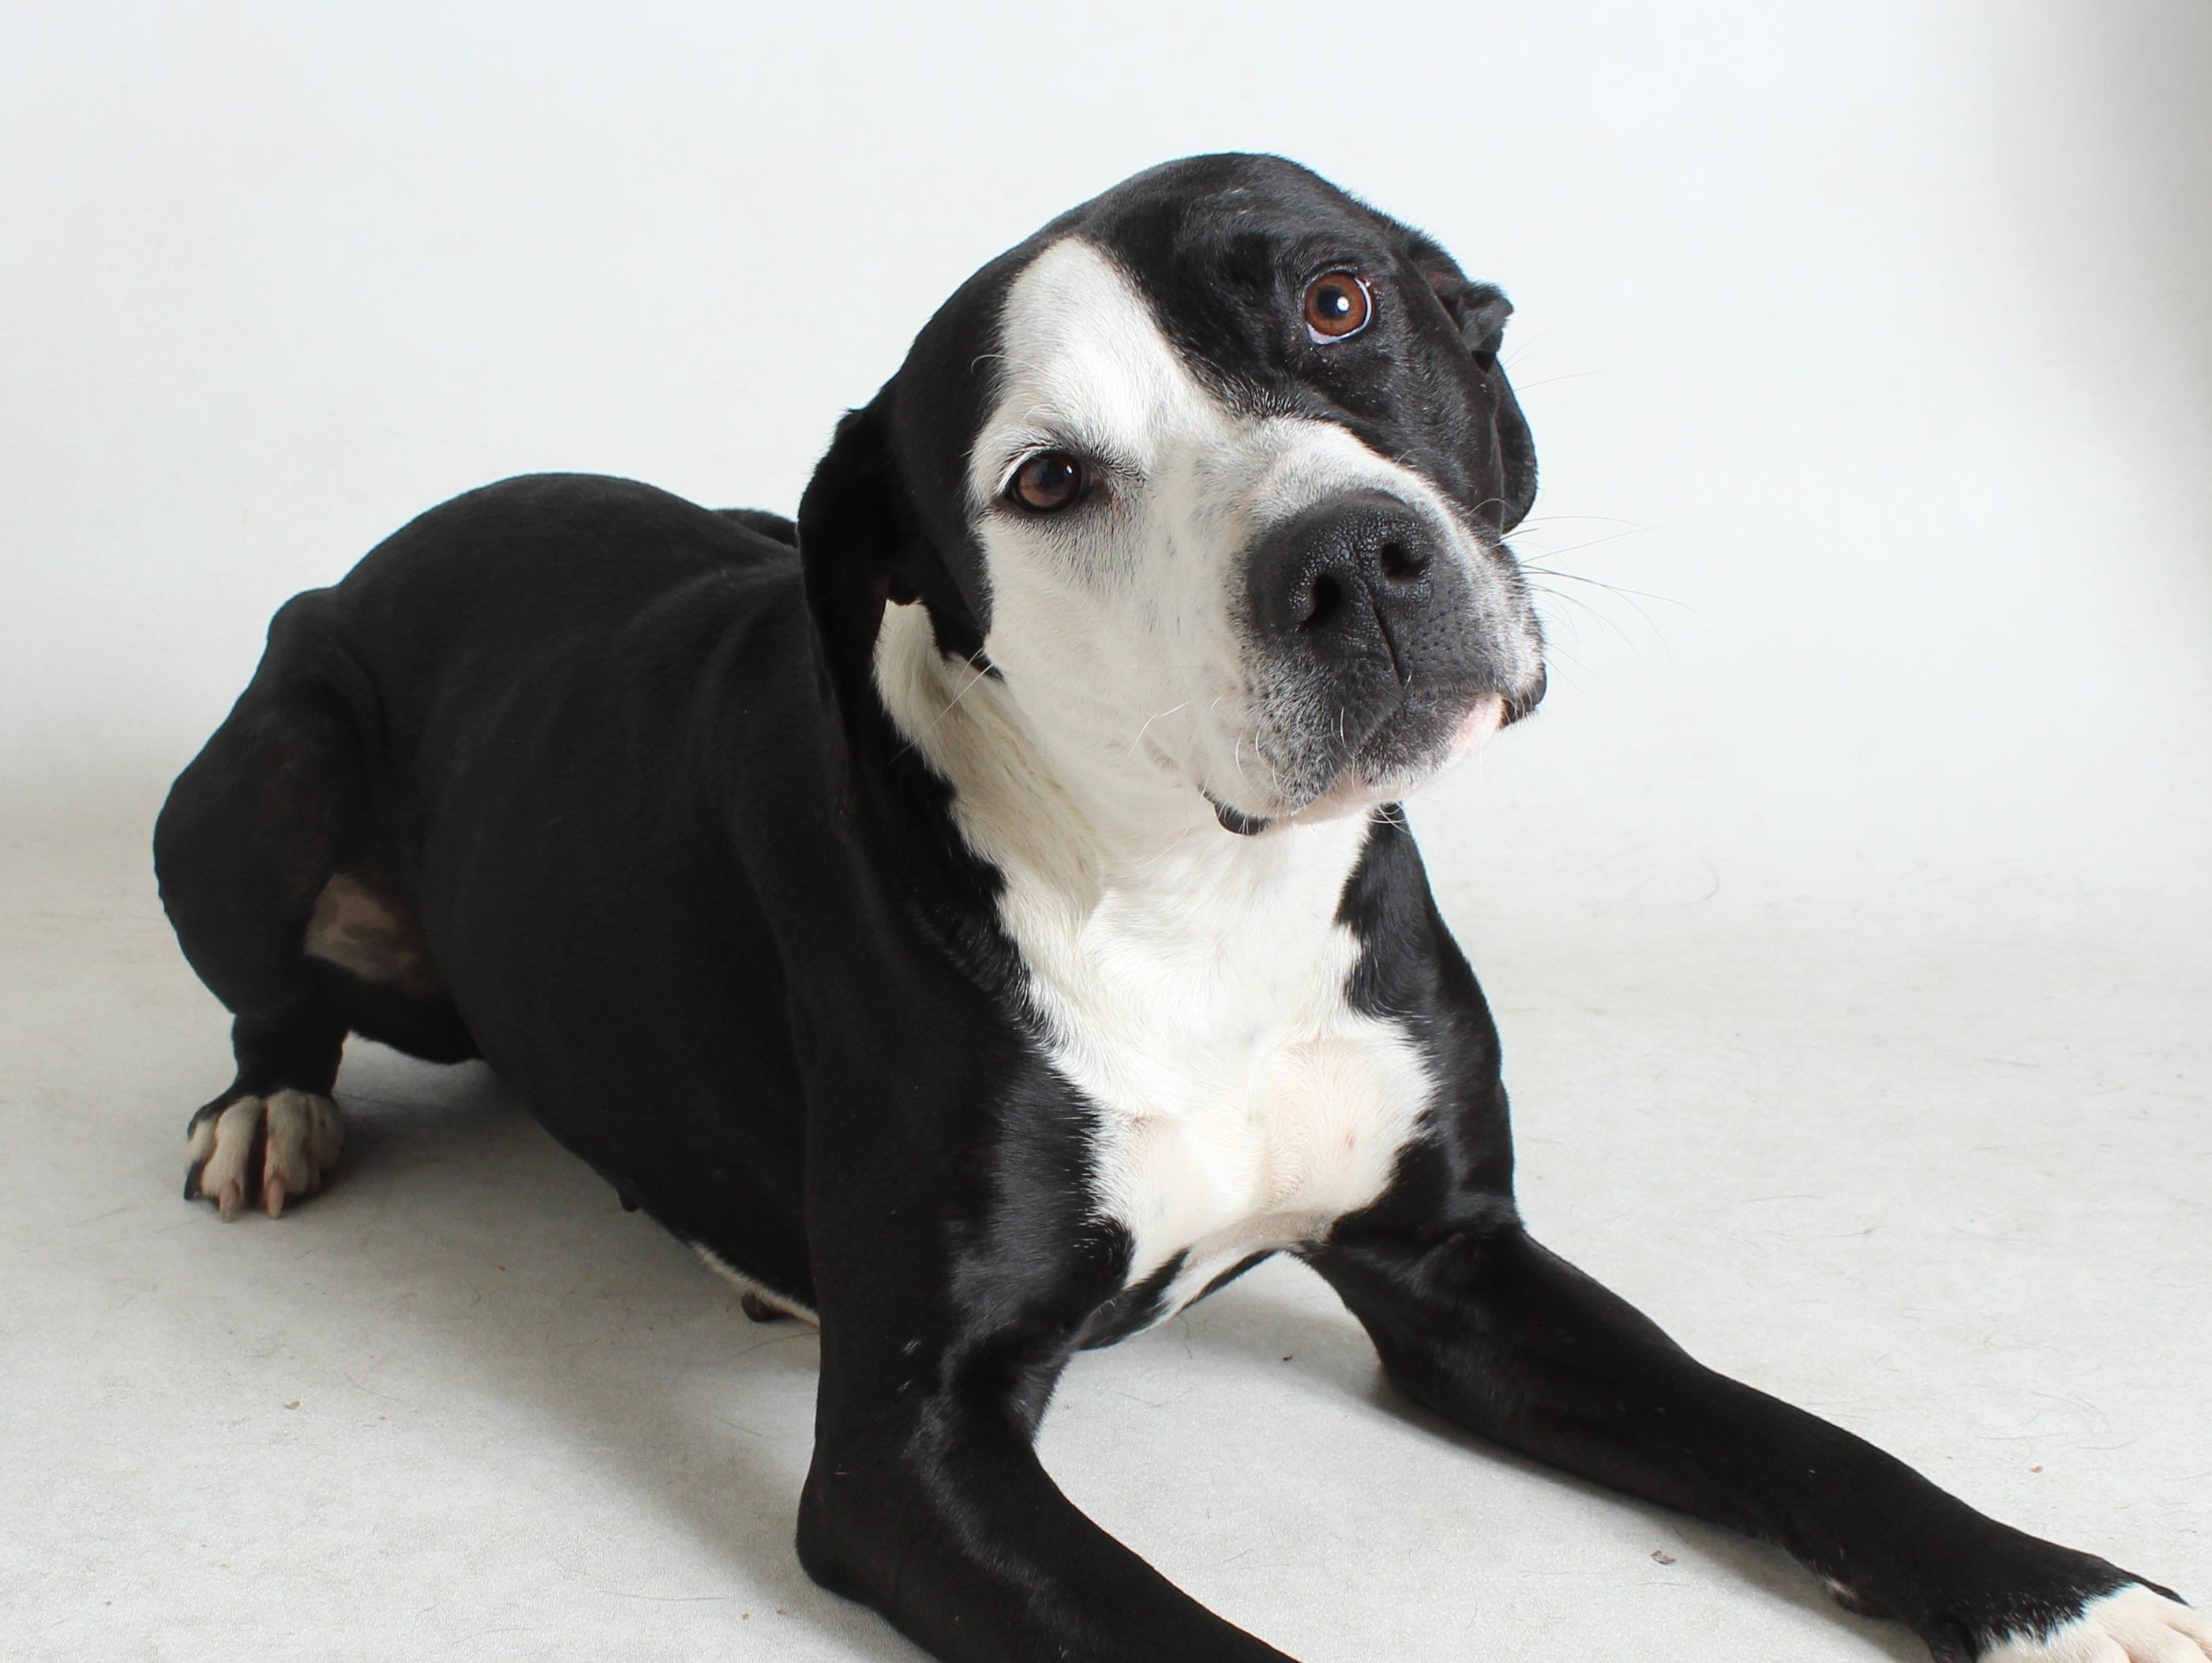 Glorious is a 5-year-old, black and white, female pit bull mix. She's very sweet and does well with kids and other dogs. All feline and canine adoptions include spaying or neutering, vaccinations and a microchip. Visit Haven Humane Society, 7449 Eastside Road, Redding. Call 241-1653. Go to www.havenhumane.net.